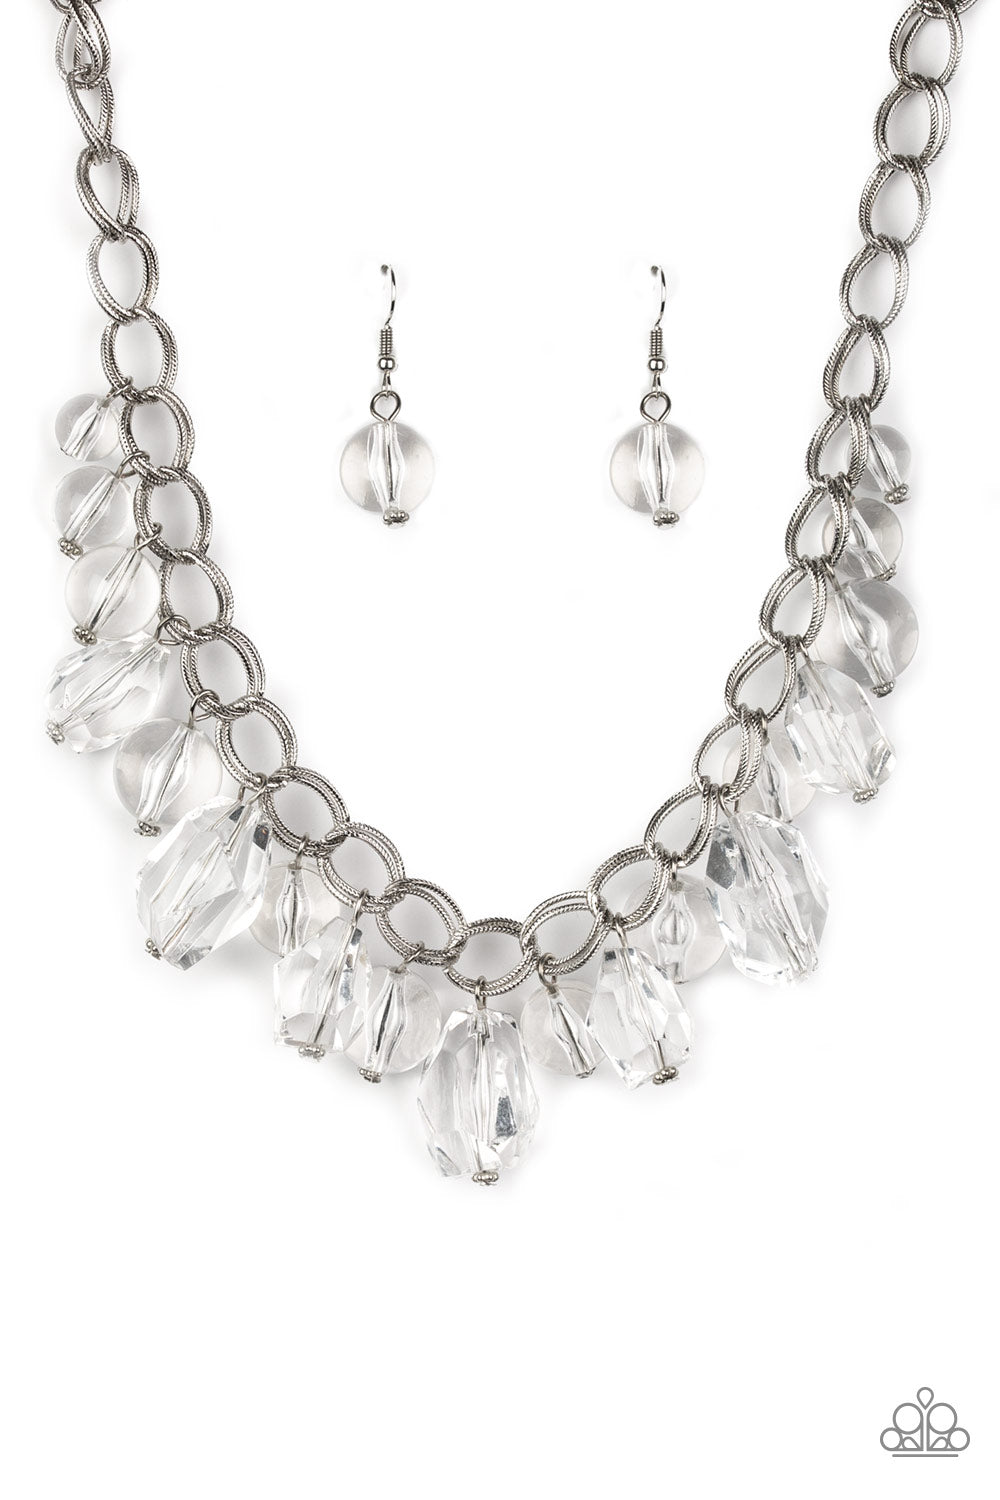 Paparazzi Gorgeously Globetrotter Necklace - White